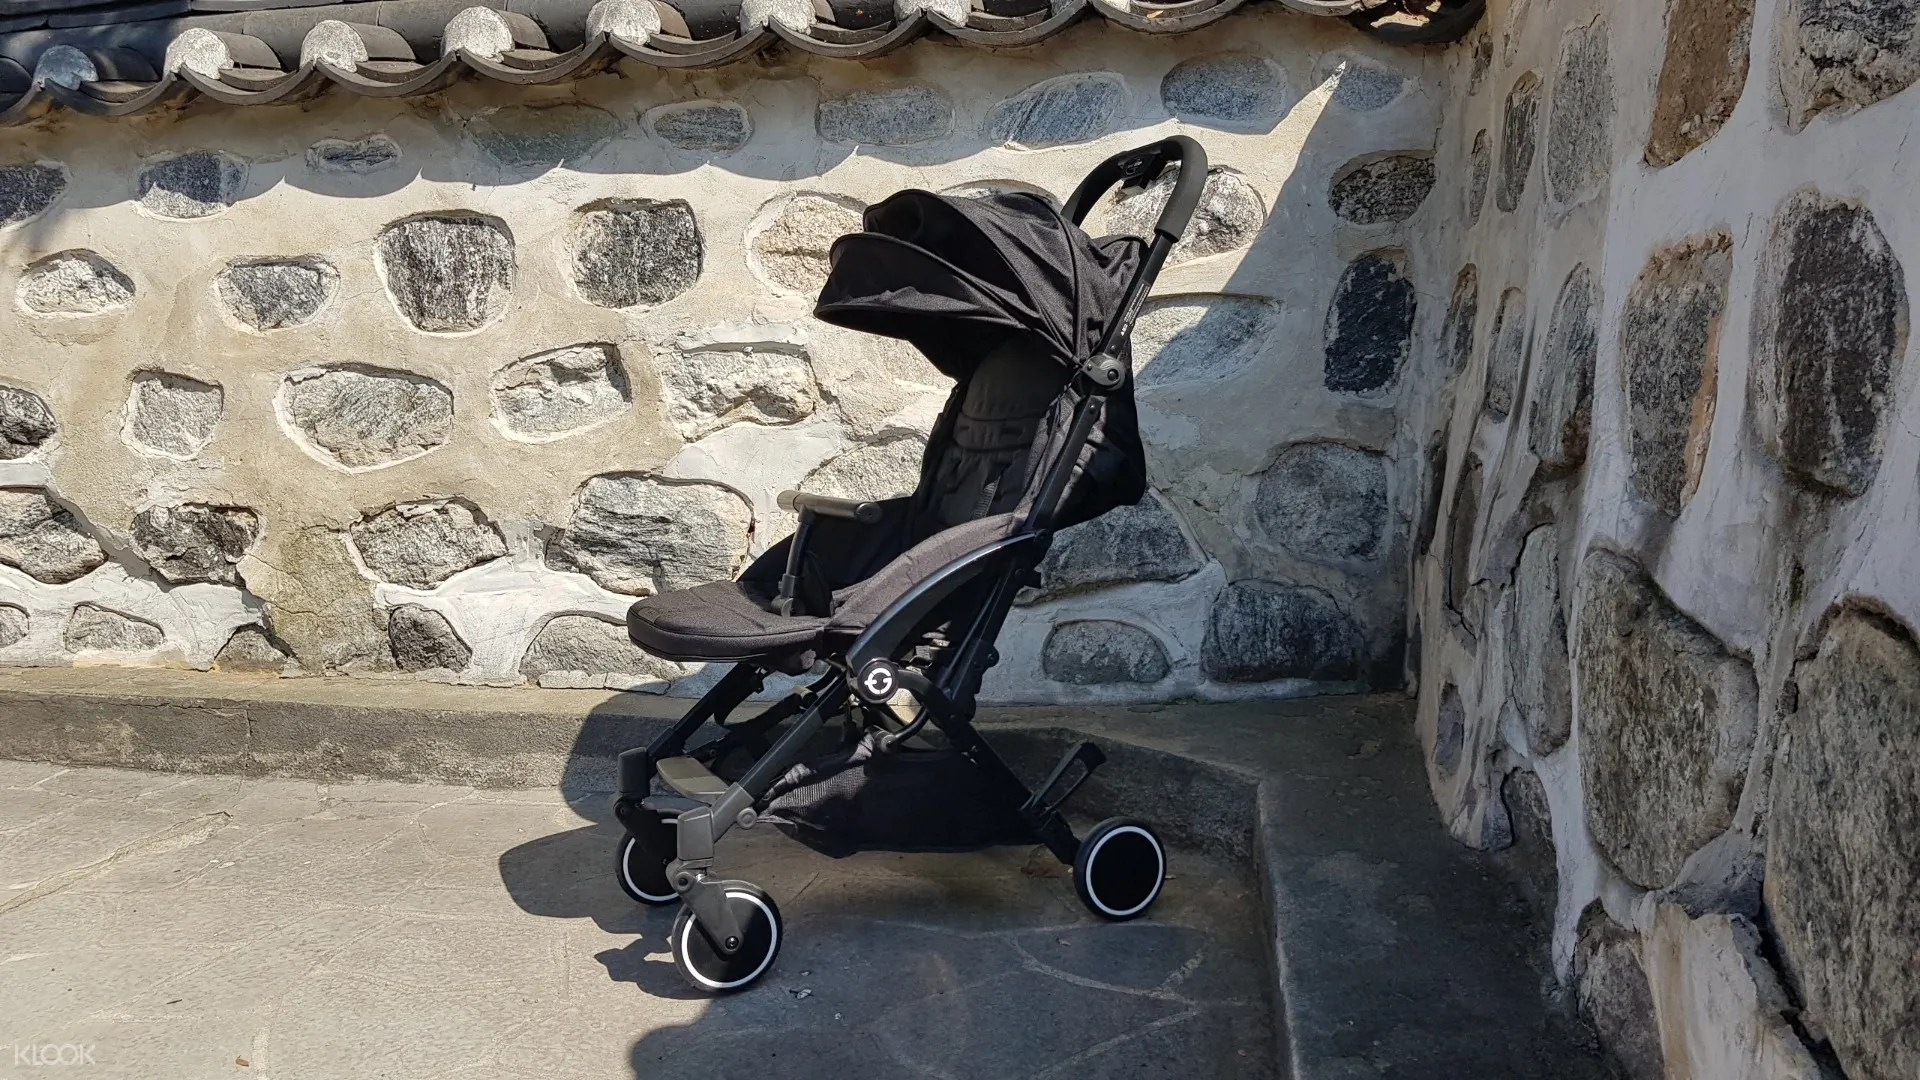 Carriage Type Strollers Stroller Rental Service In Seoul Klook